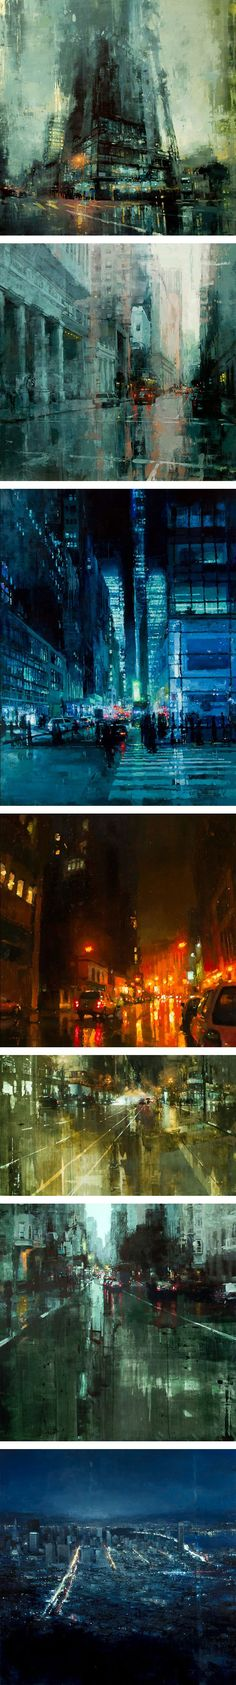 Cityscapes Painted with Oils by Jeremy Mann Cityscapes Painted with Oils by Jeremy Mann. via Monica Brorstad.Cityscapes Painted with Oils by Jeremy Mann. via Monica Brorstad.